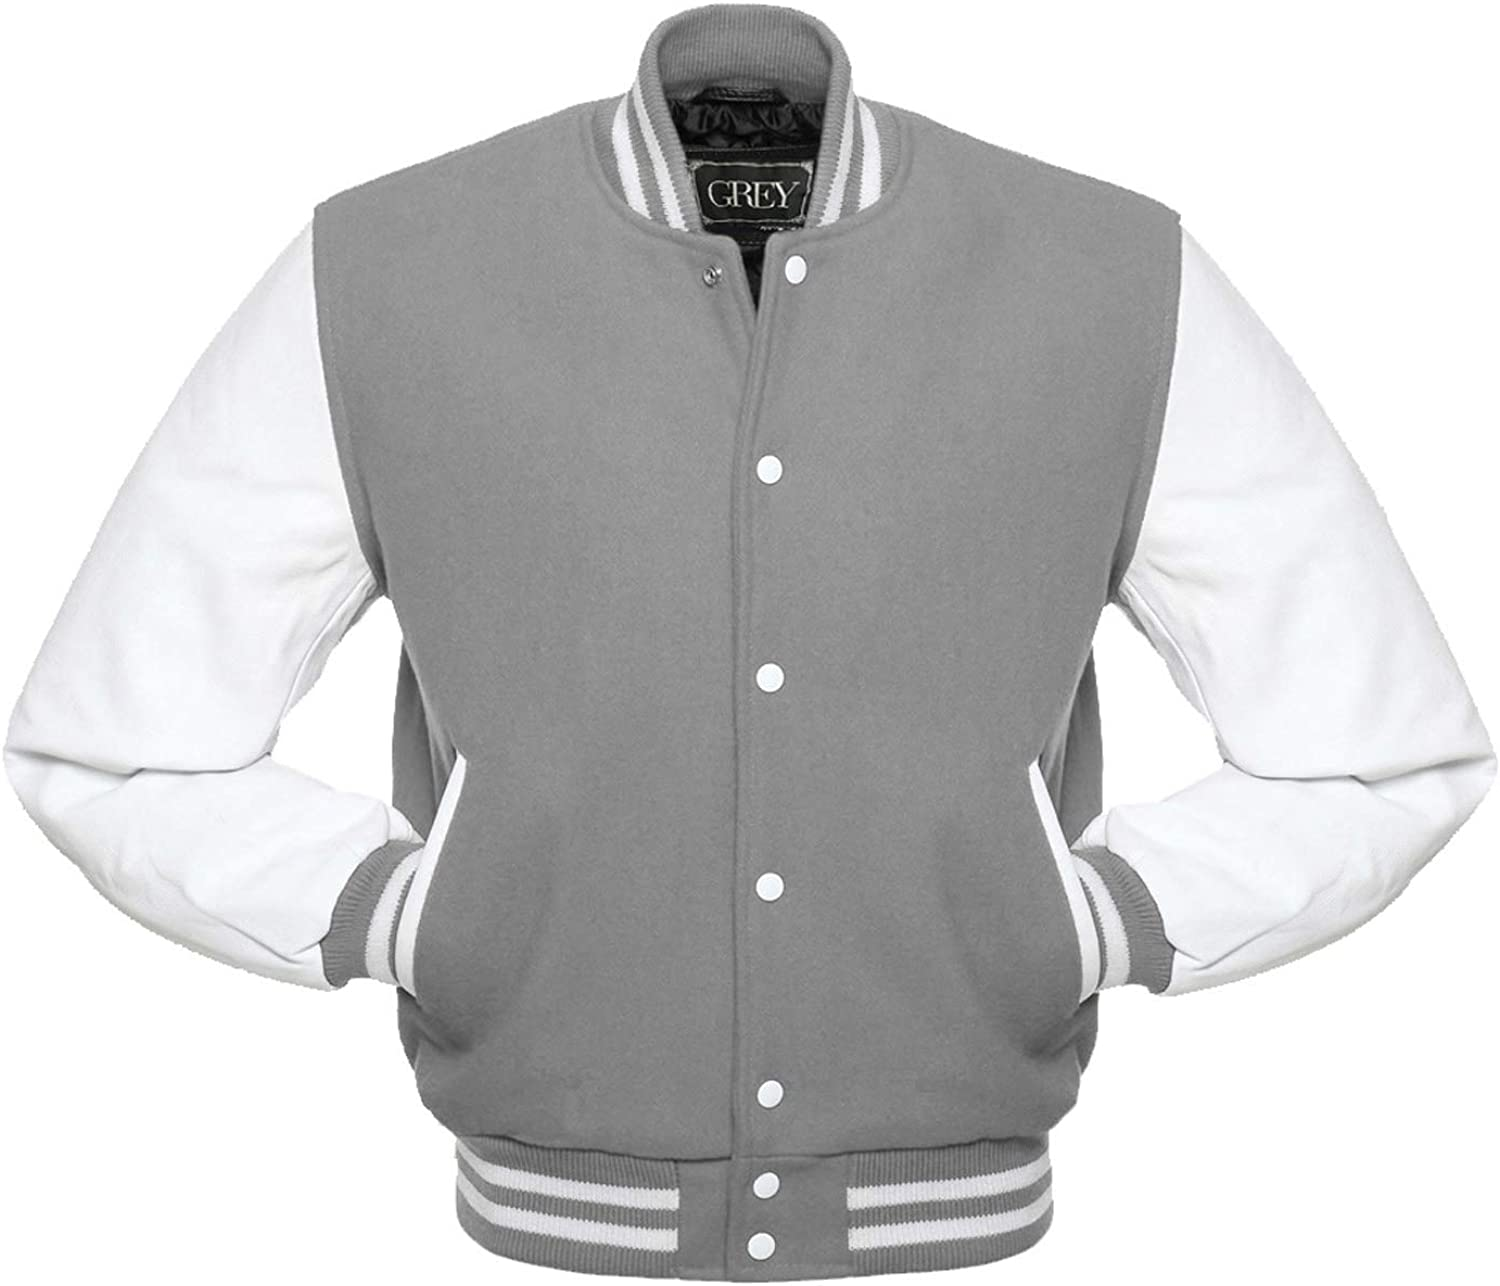 GREY Brand Varsity Jacket, Wool Body with Leather Arms Letterman Baseball Unique & Stylish (3XL)